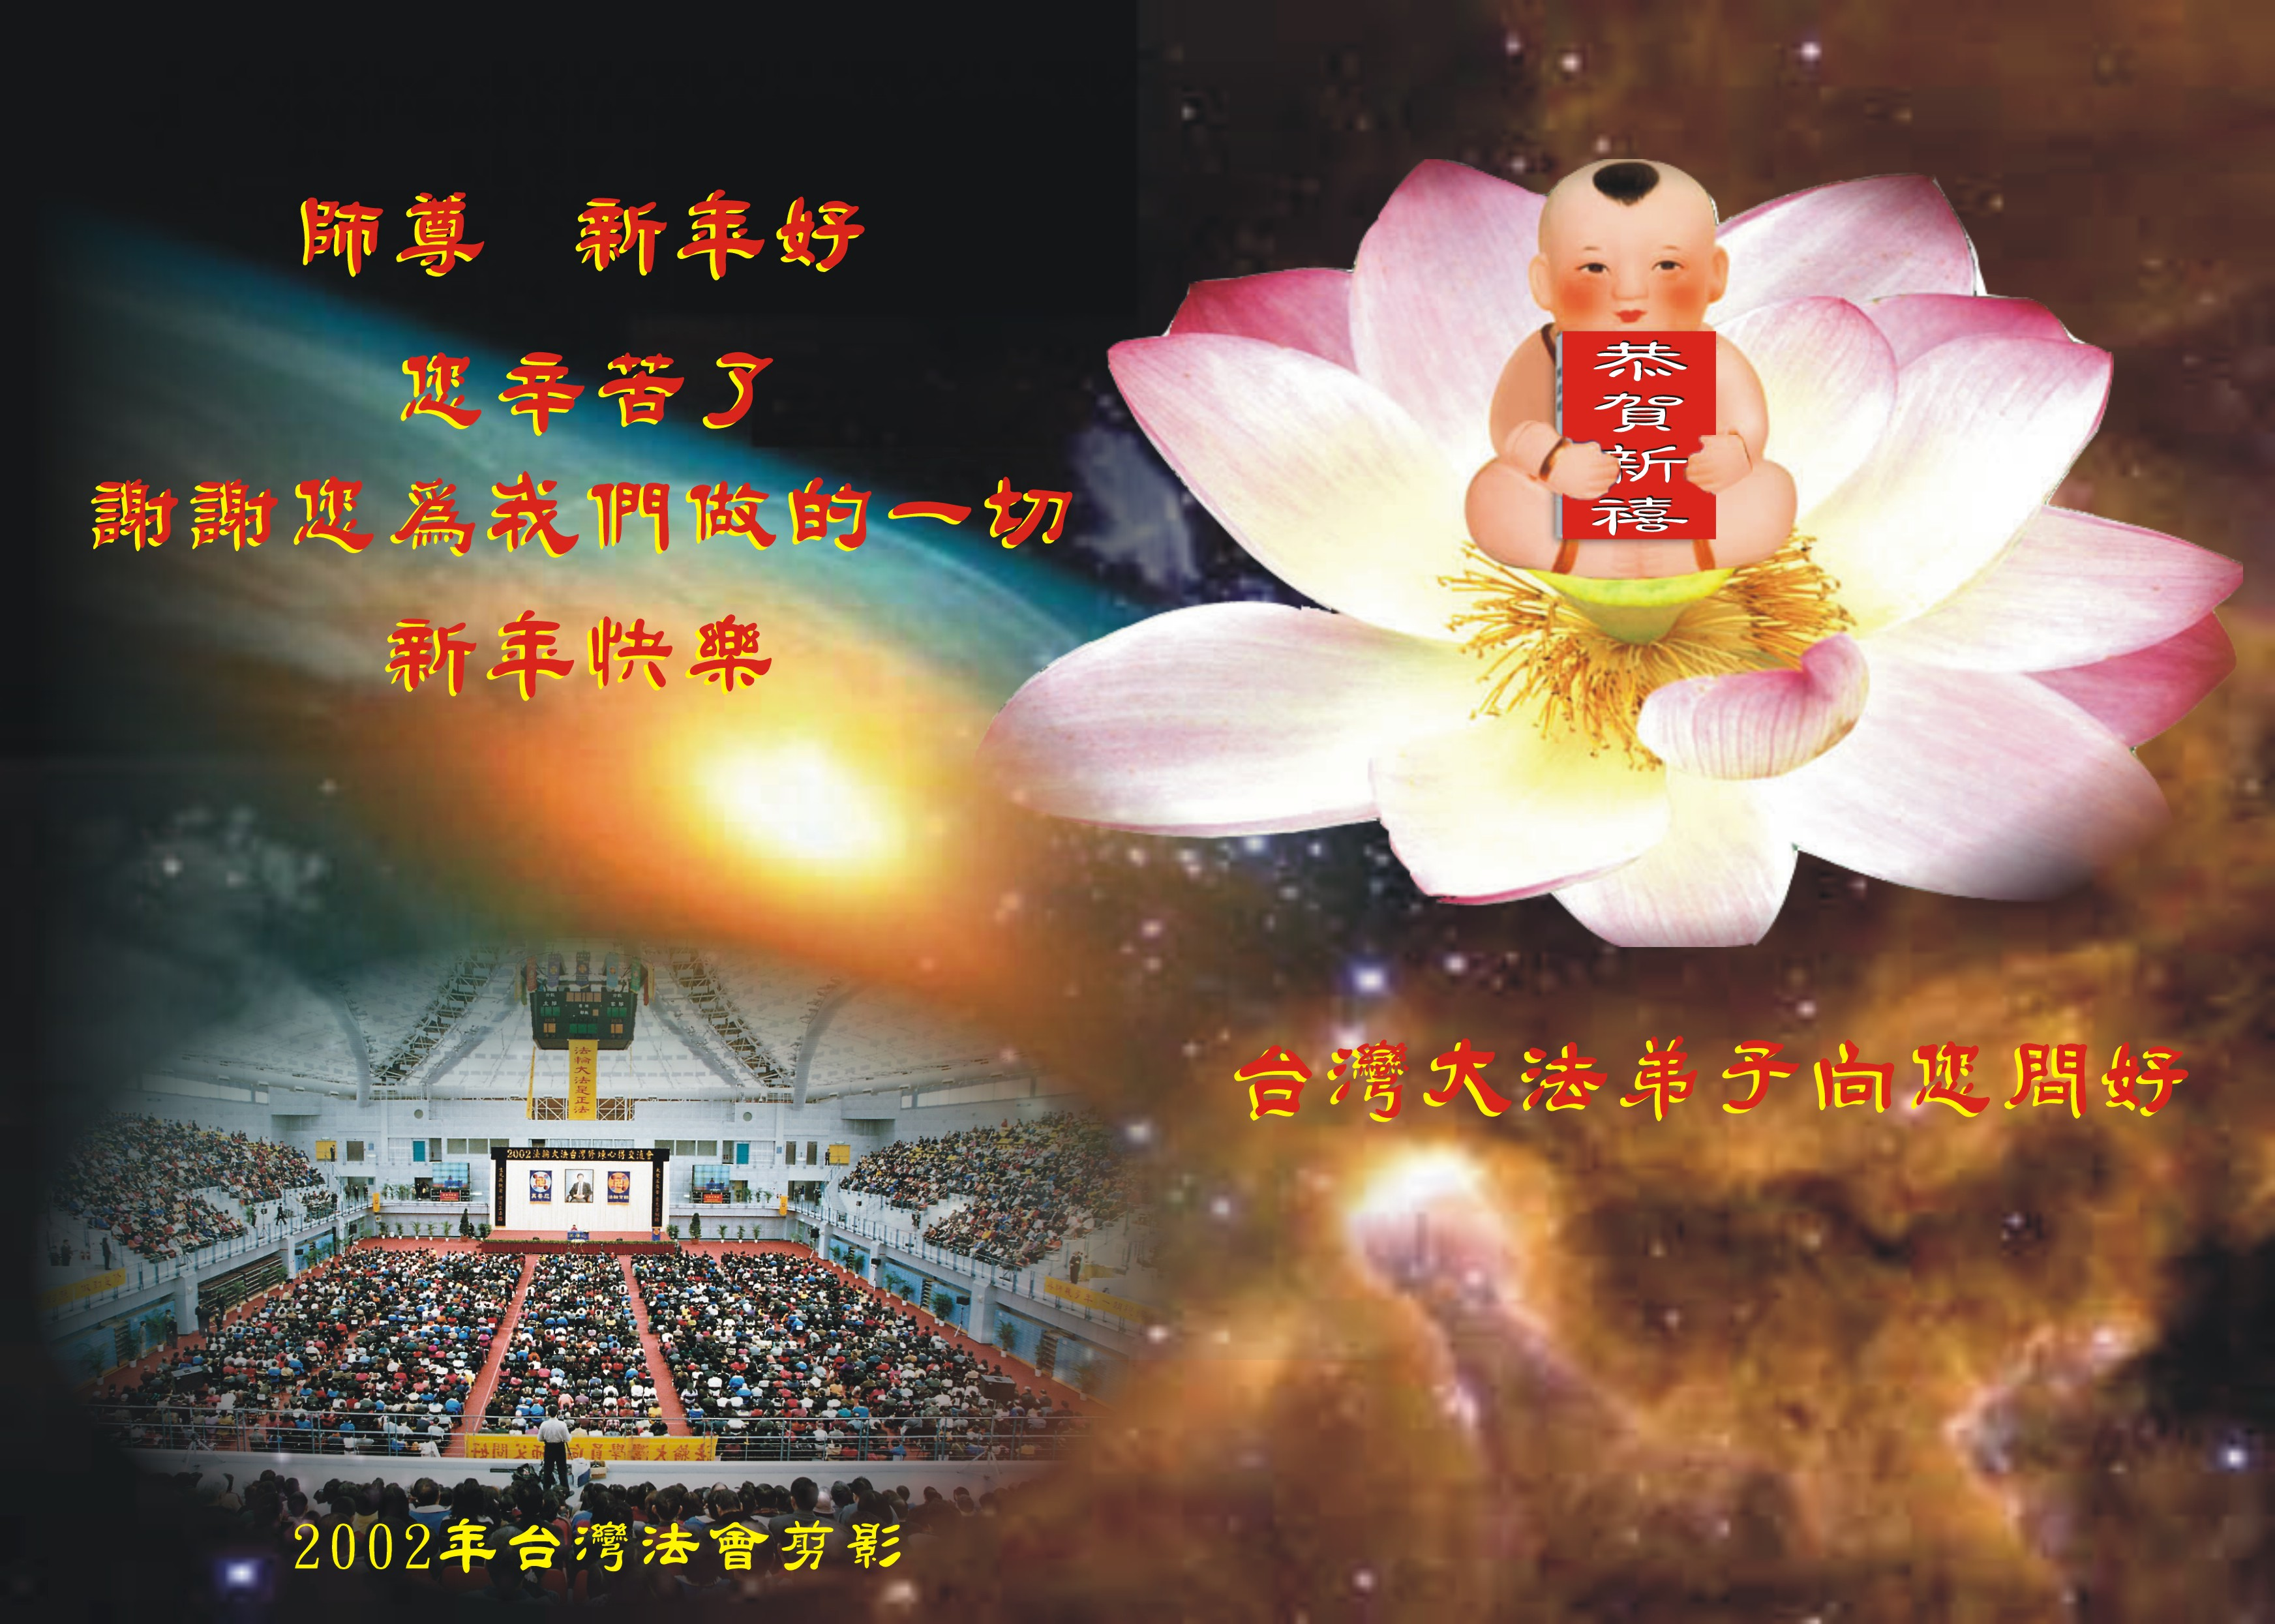 Falun dafa practitioners from asianpacific regions respectfully words in the photo left master greetings you have been working so hard thank you for all you have done for us happy new year kristyandbryce Images